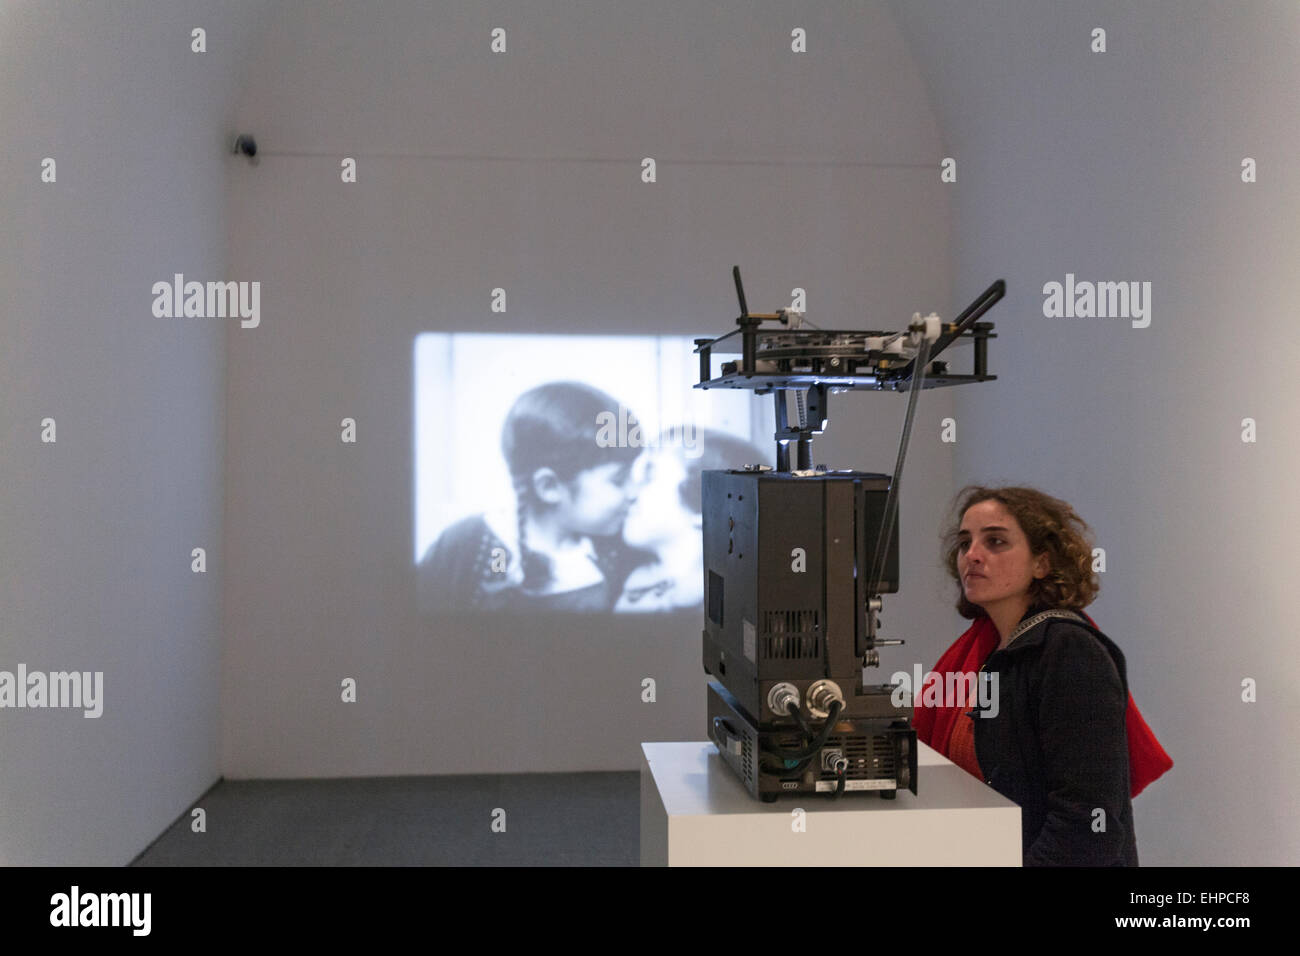 woman-observing-a-film-projector-modern-